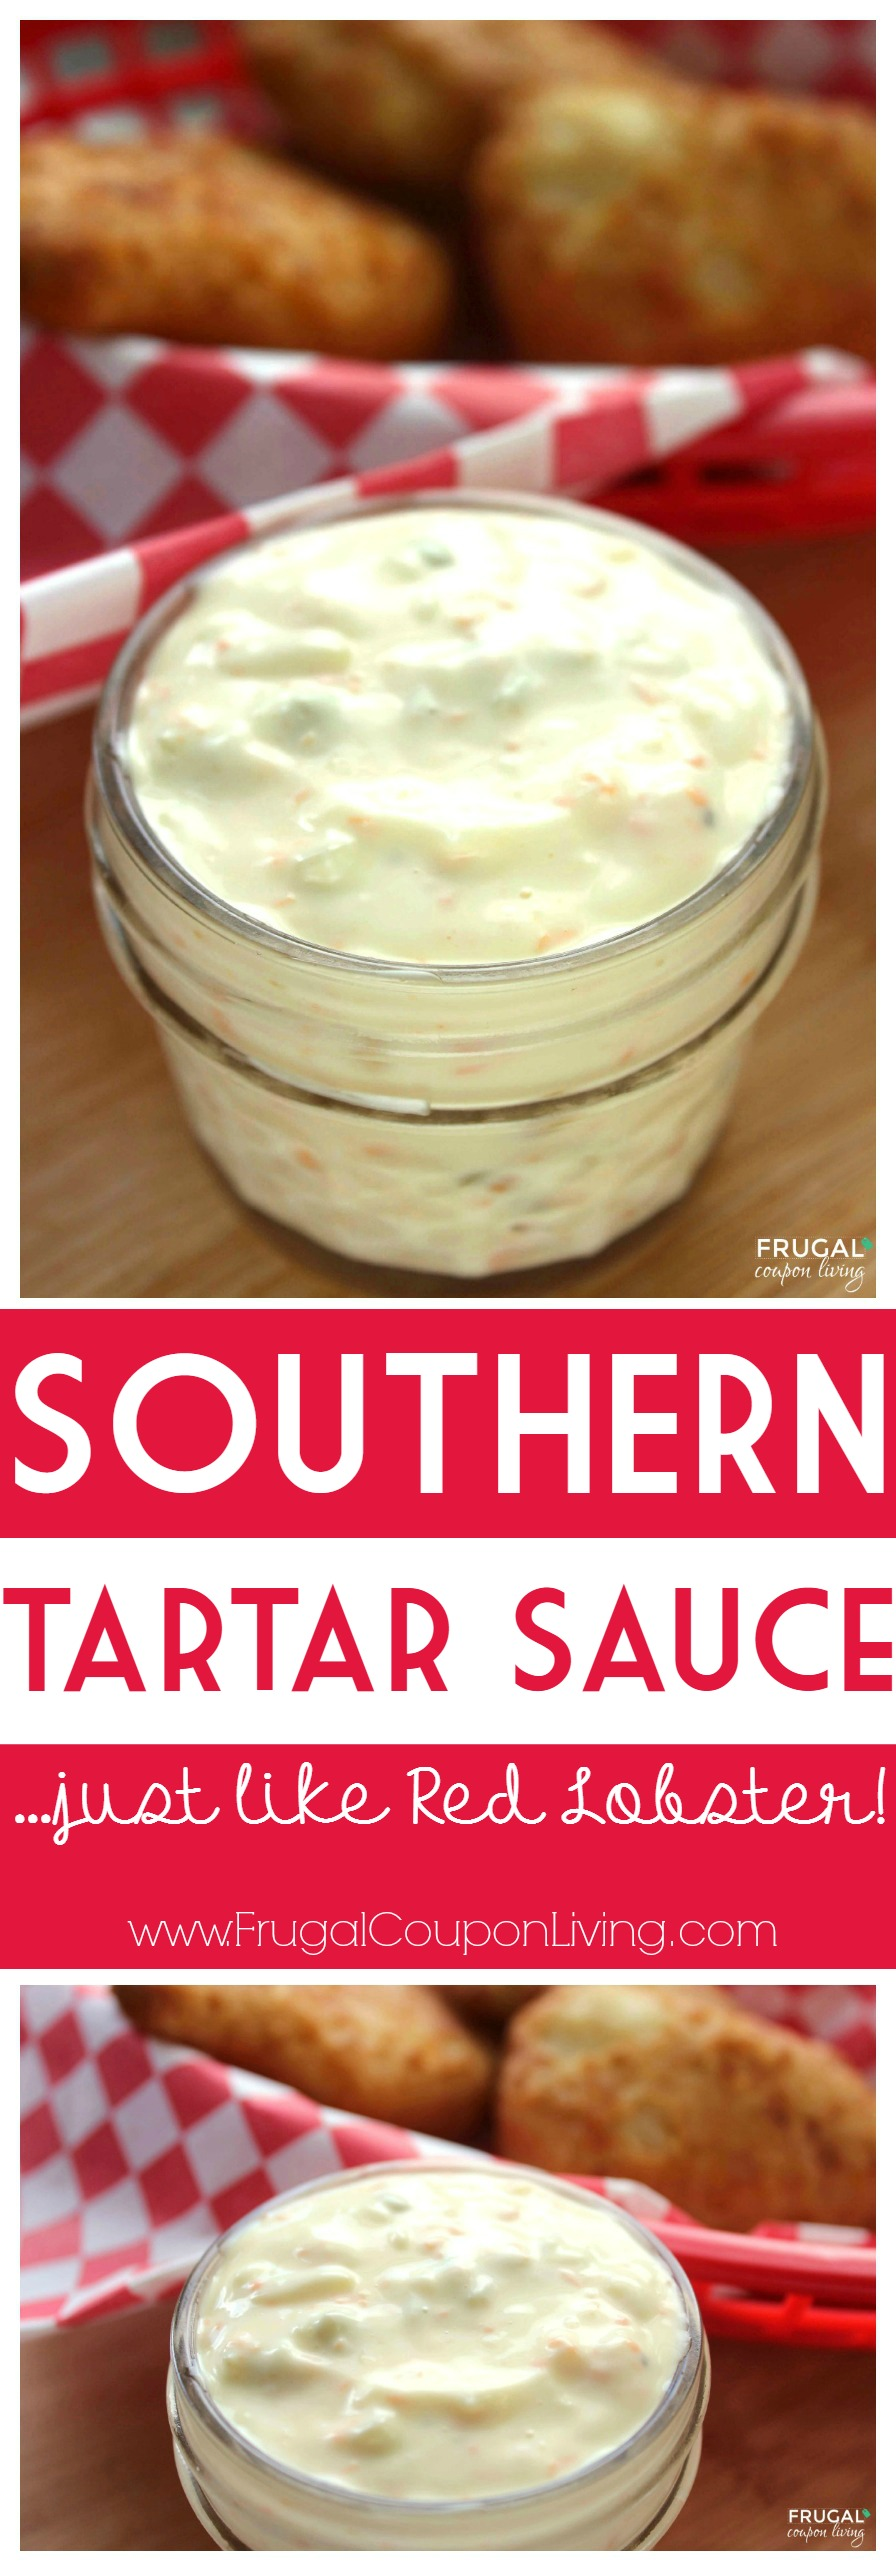 Red-lobster-collage-southern-tartar-sauce-frugual-coupon-living